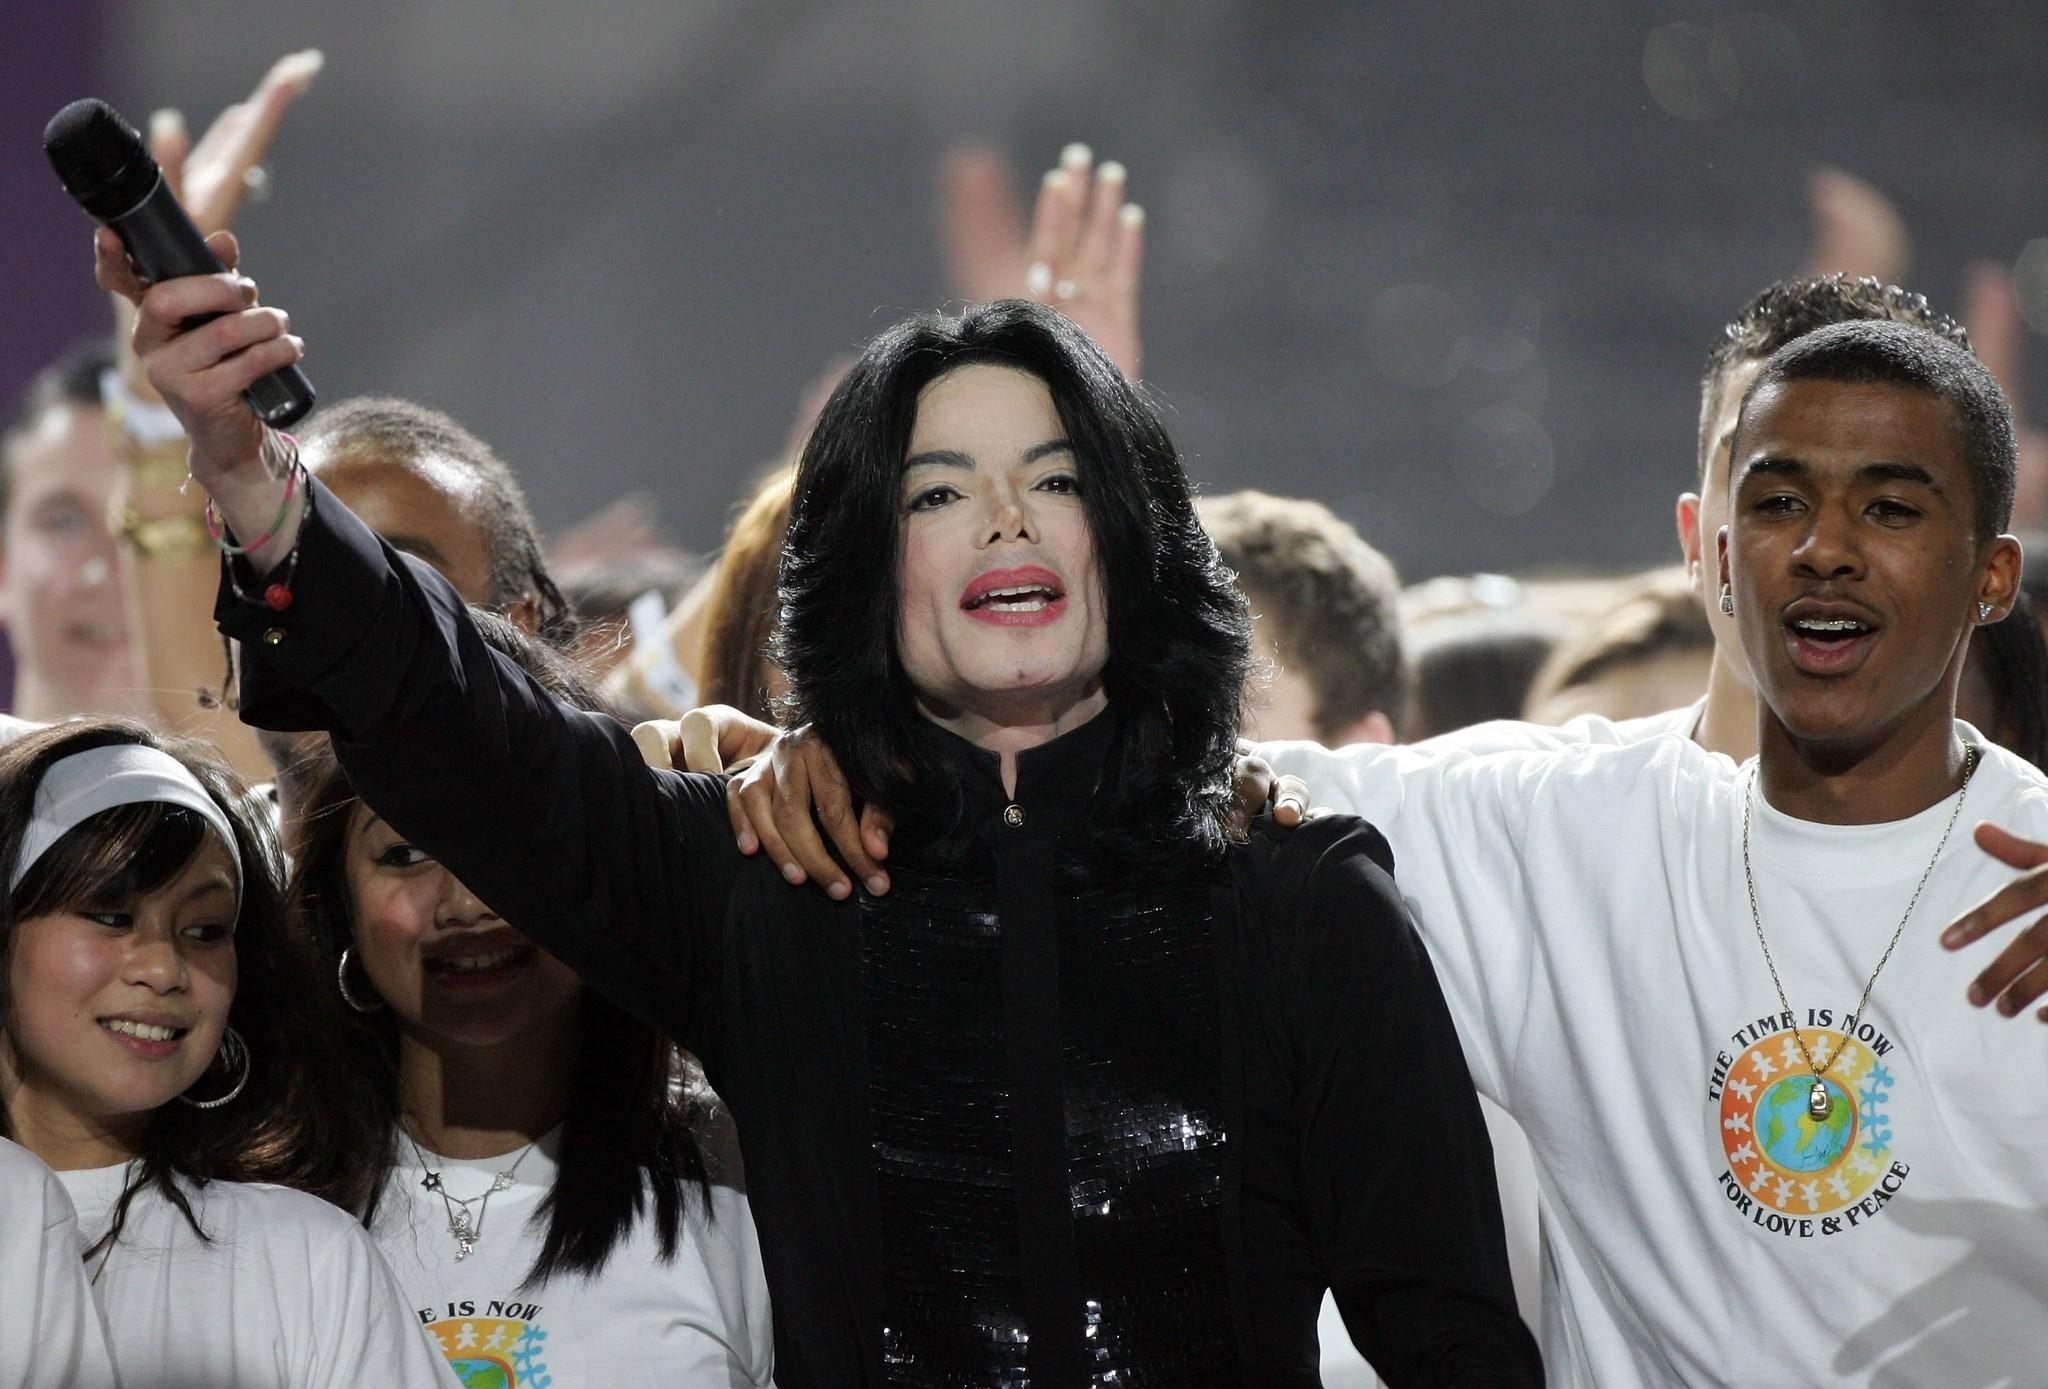 """Sony Music has announced the release in May of previously unreleased music from Michael Jackson comprising the album entitled """"XSCAPE."""""""